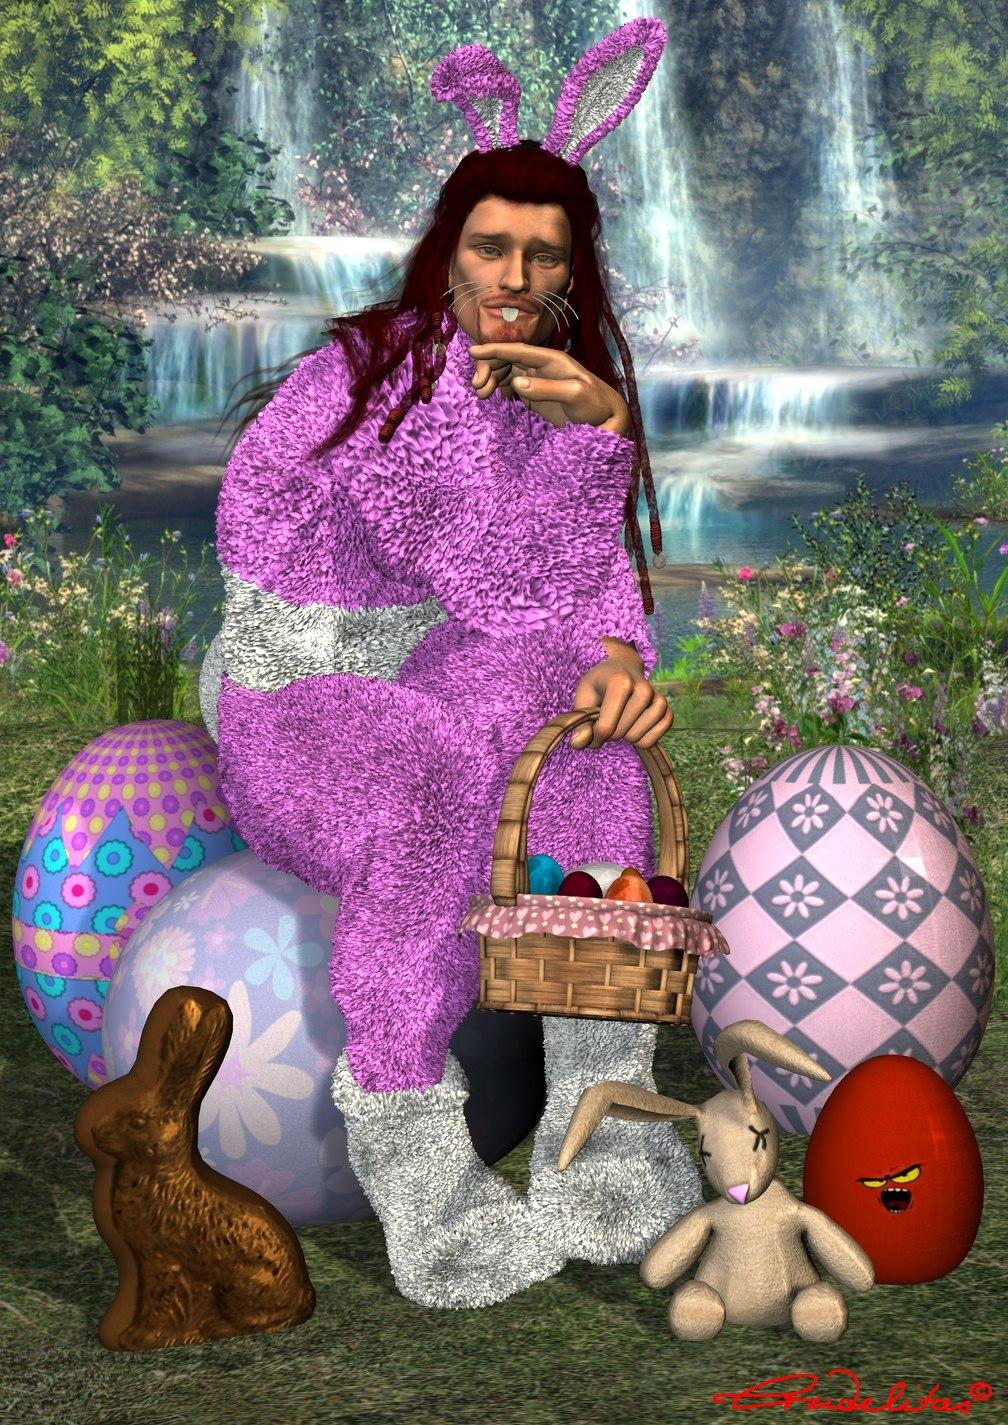 Happy Easter for my friends by Crudelitas